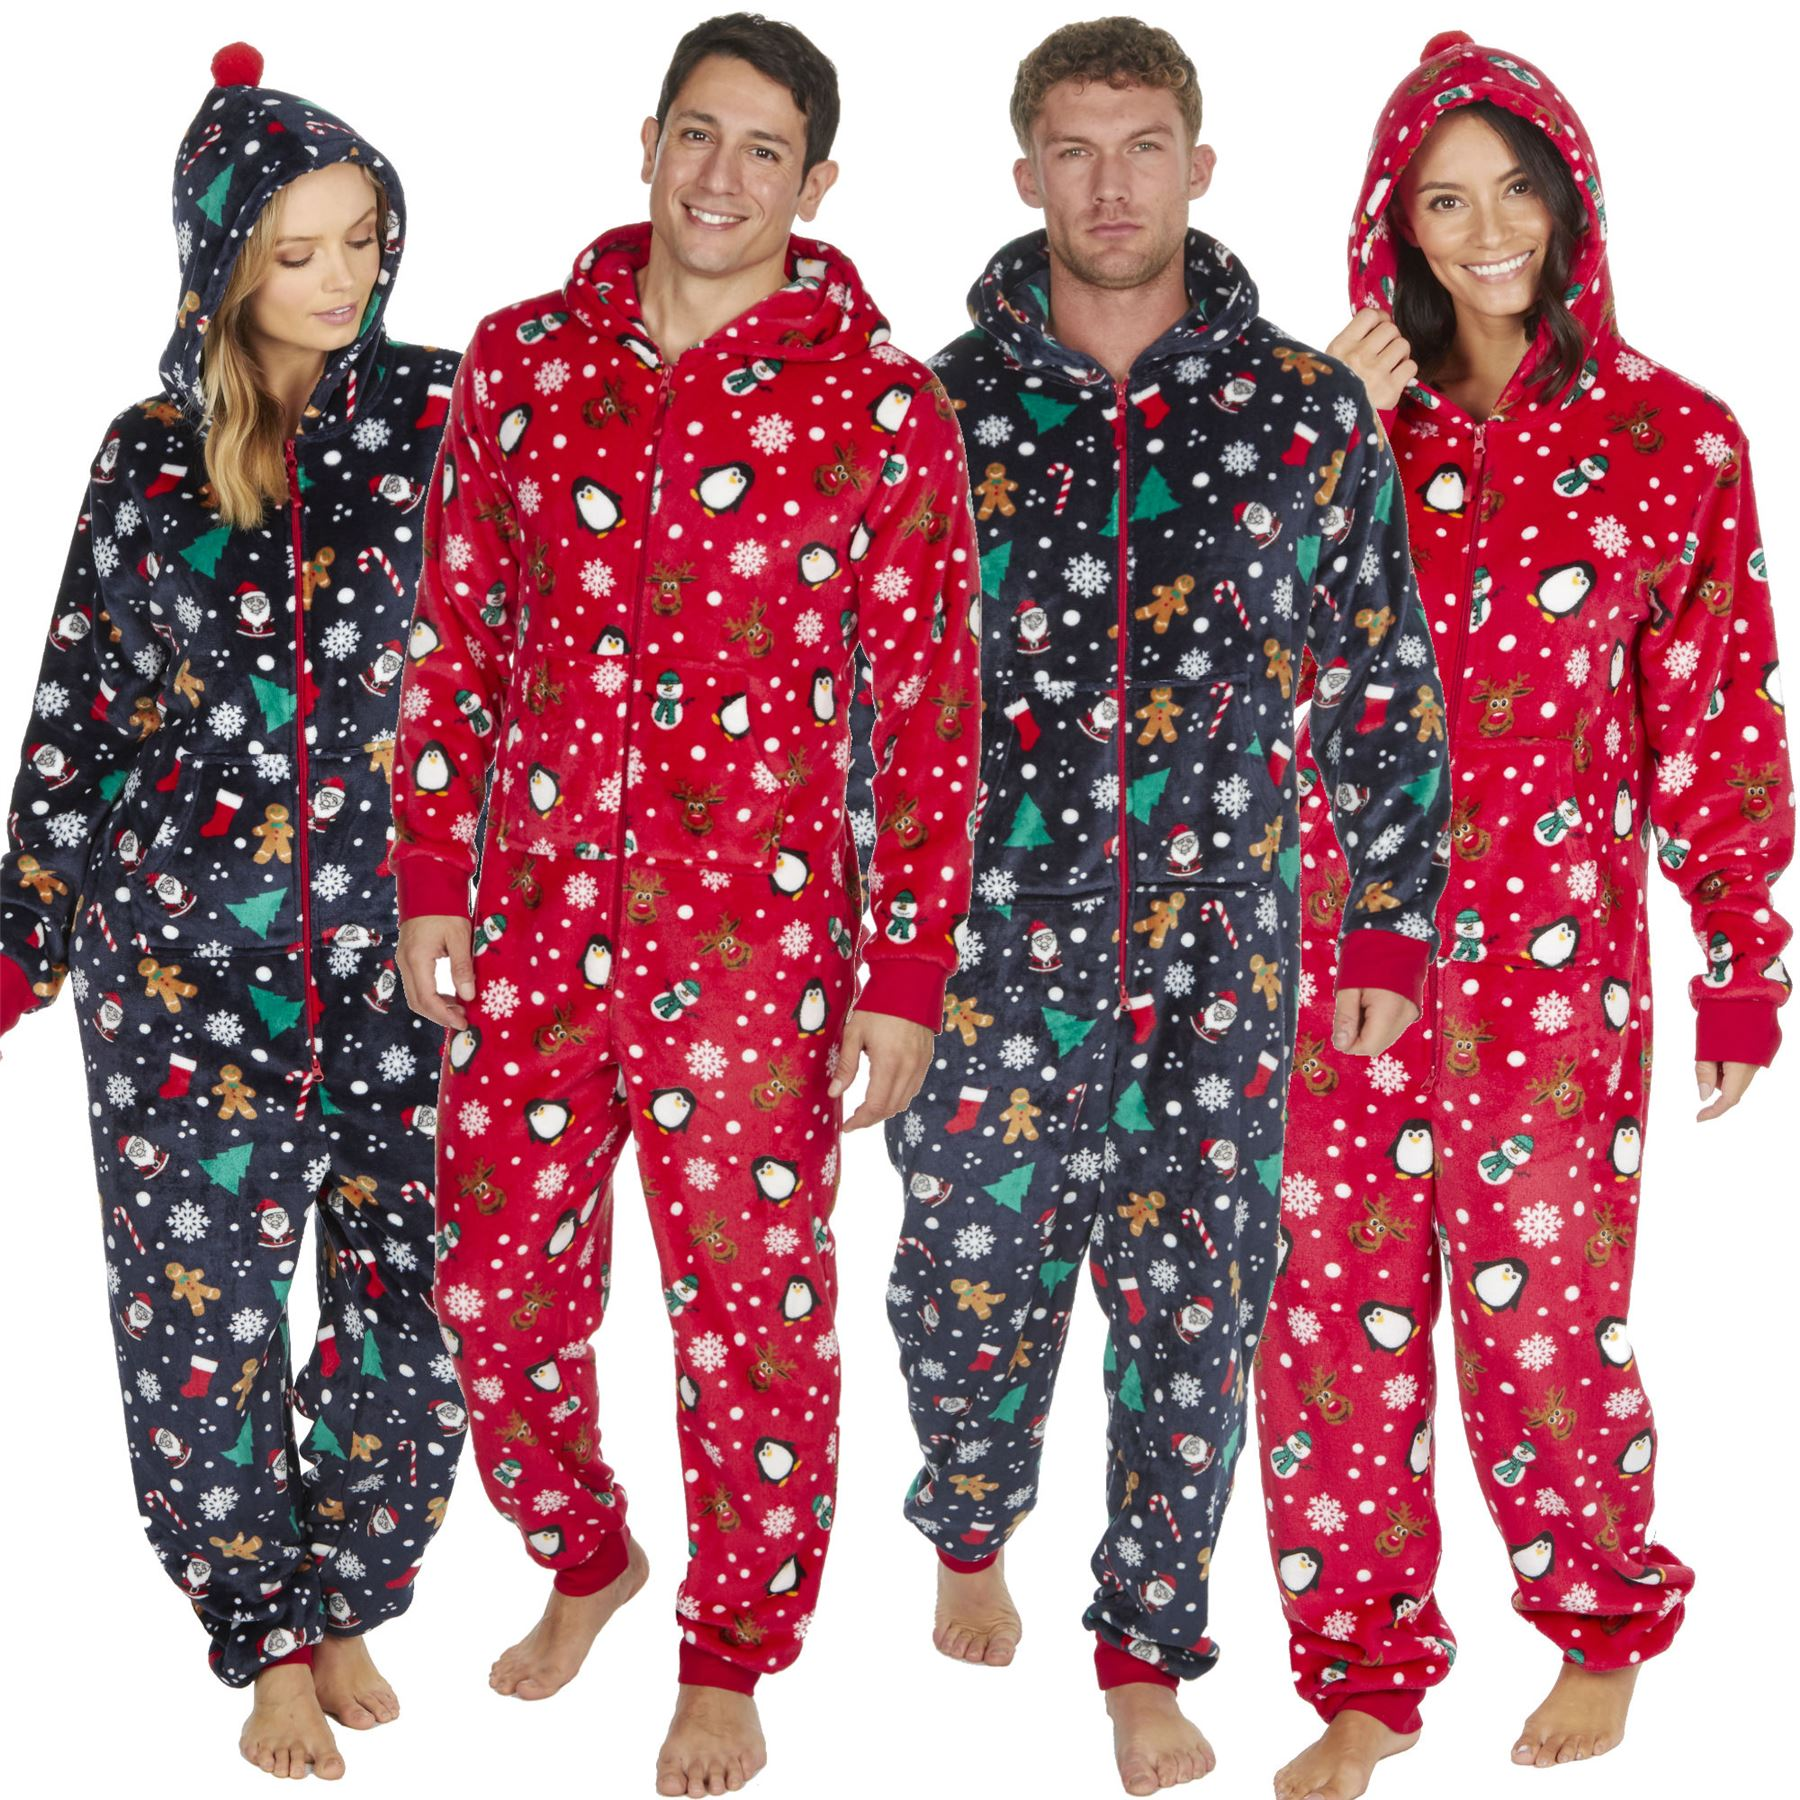 a09a3e6ee2 Details about 1Onesie Women's Mens Onezee Xmas Soft Snuggle Fleece All in  One Pyjamas Pjs